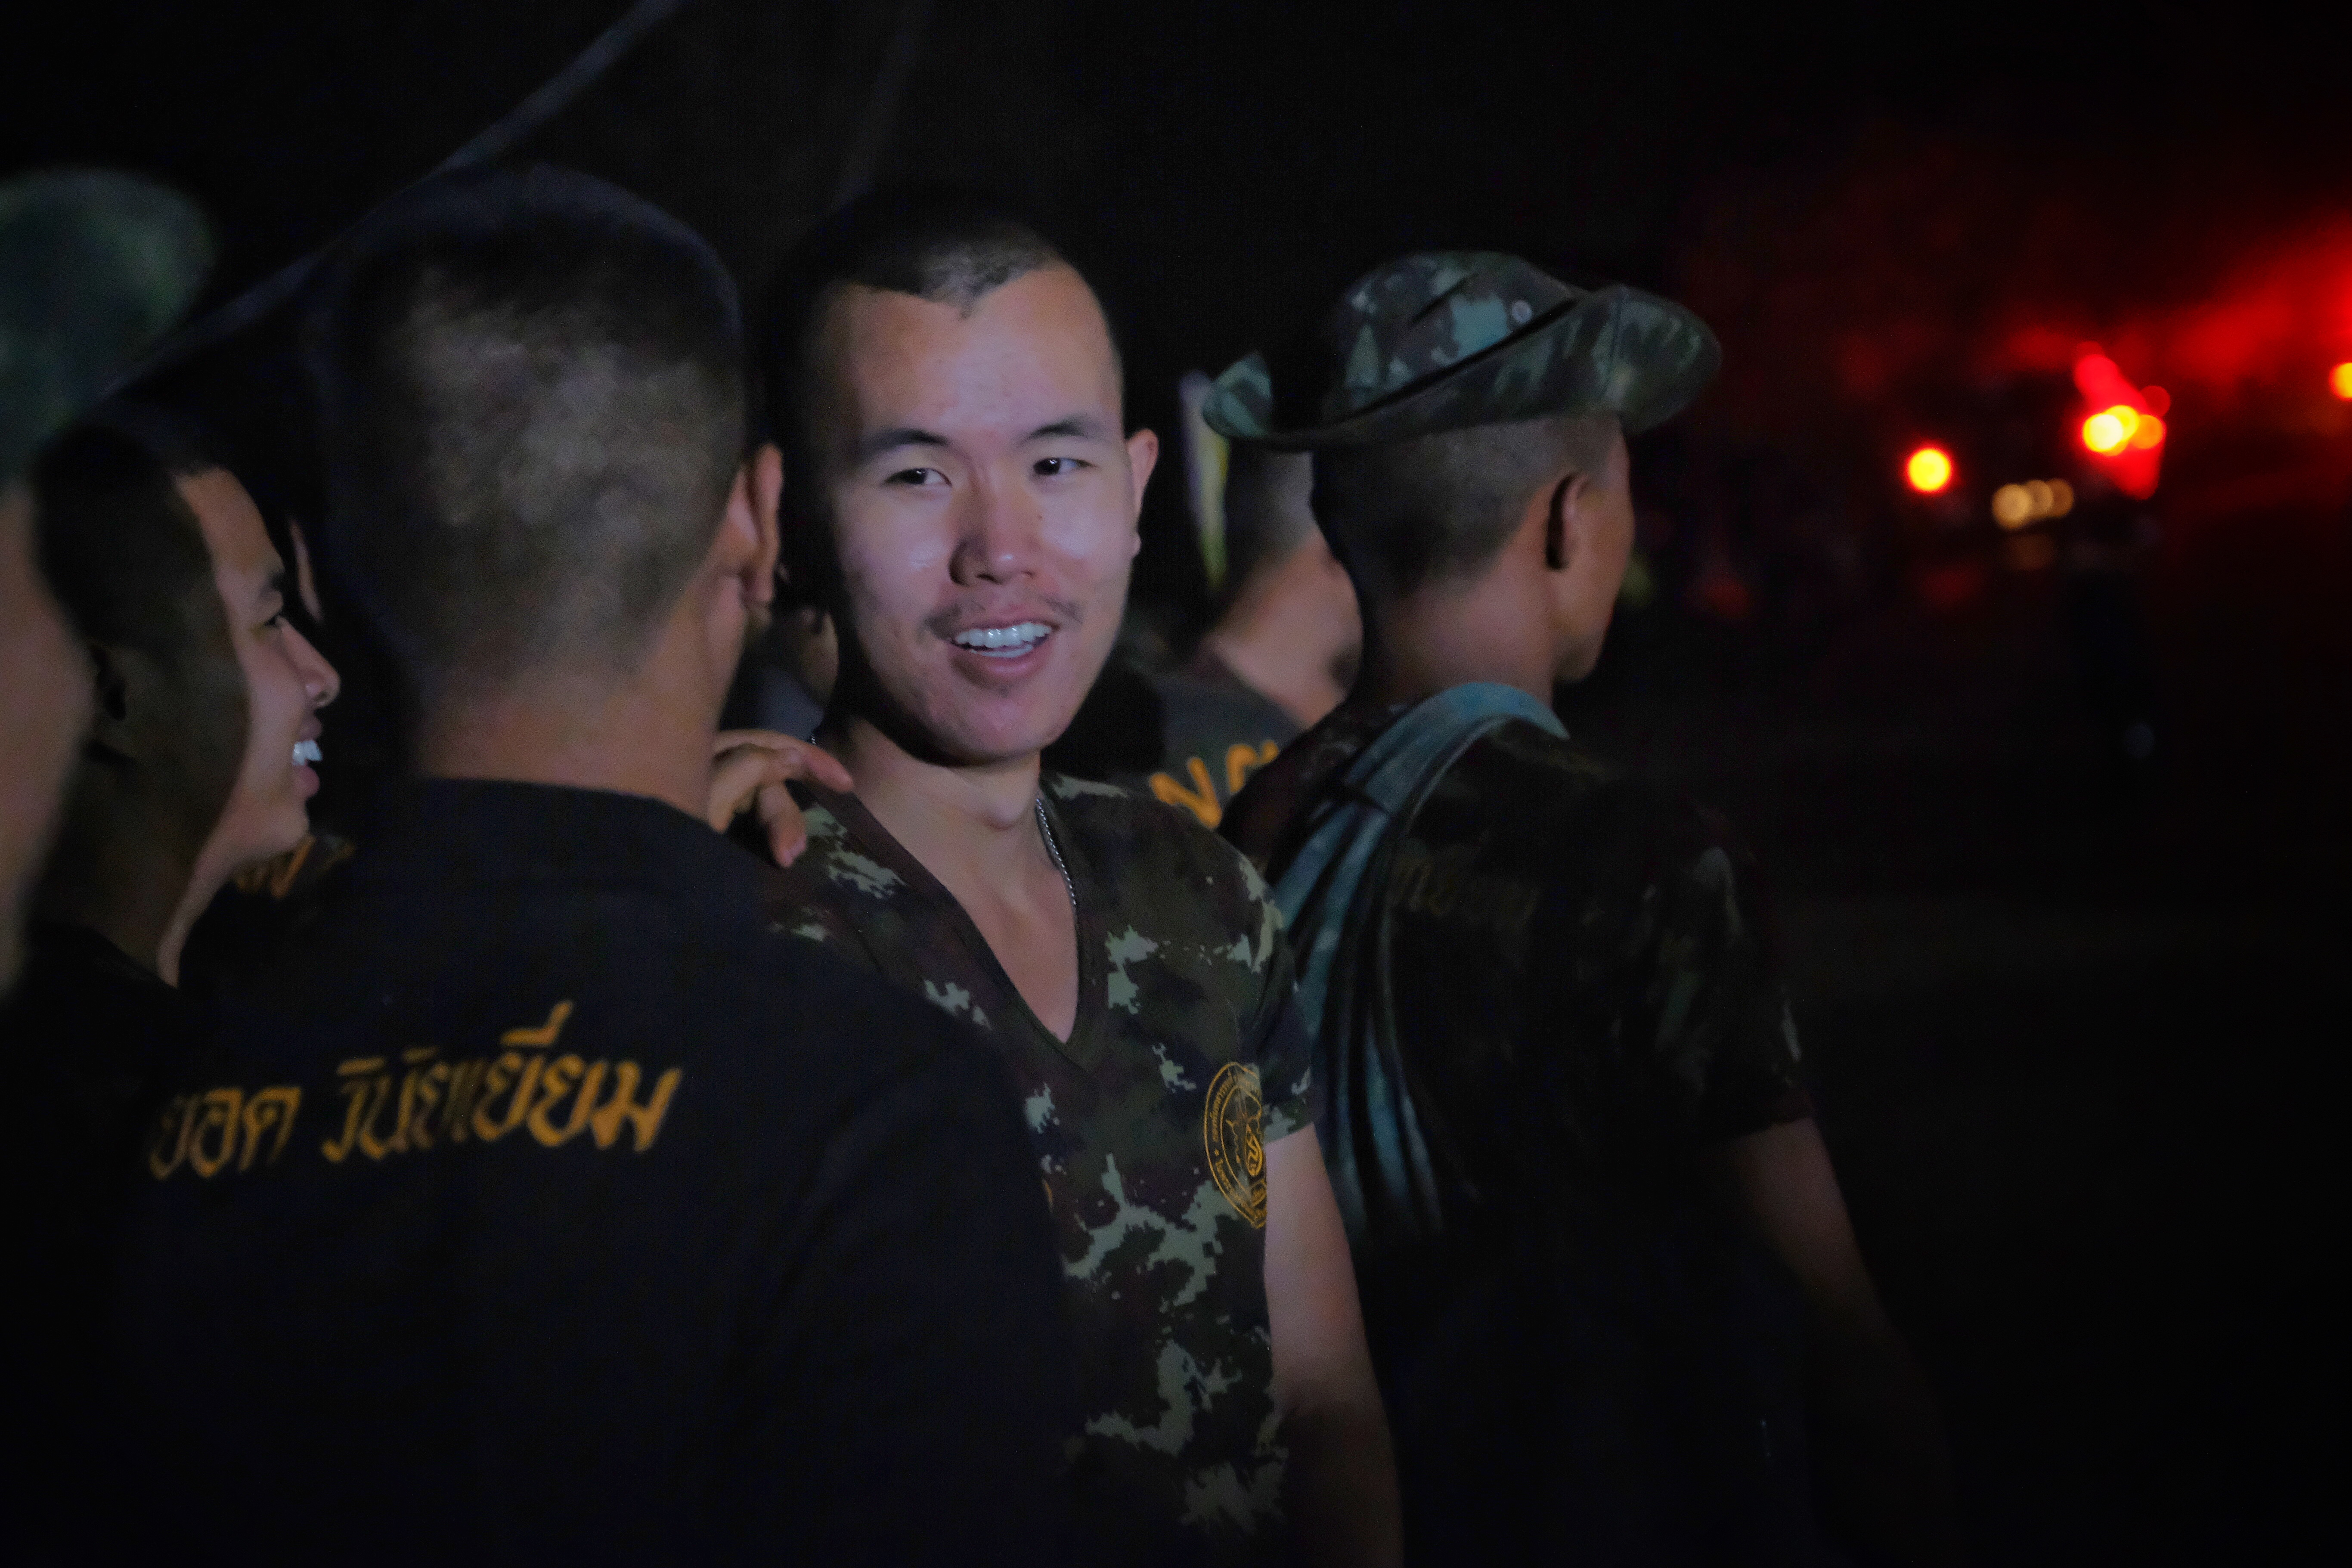 Thai cave rescue: 2 movies are already in the works - Vox